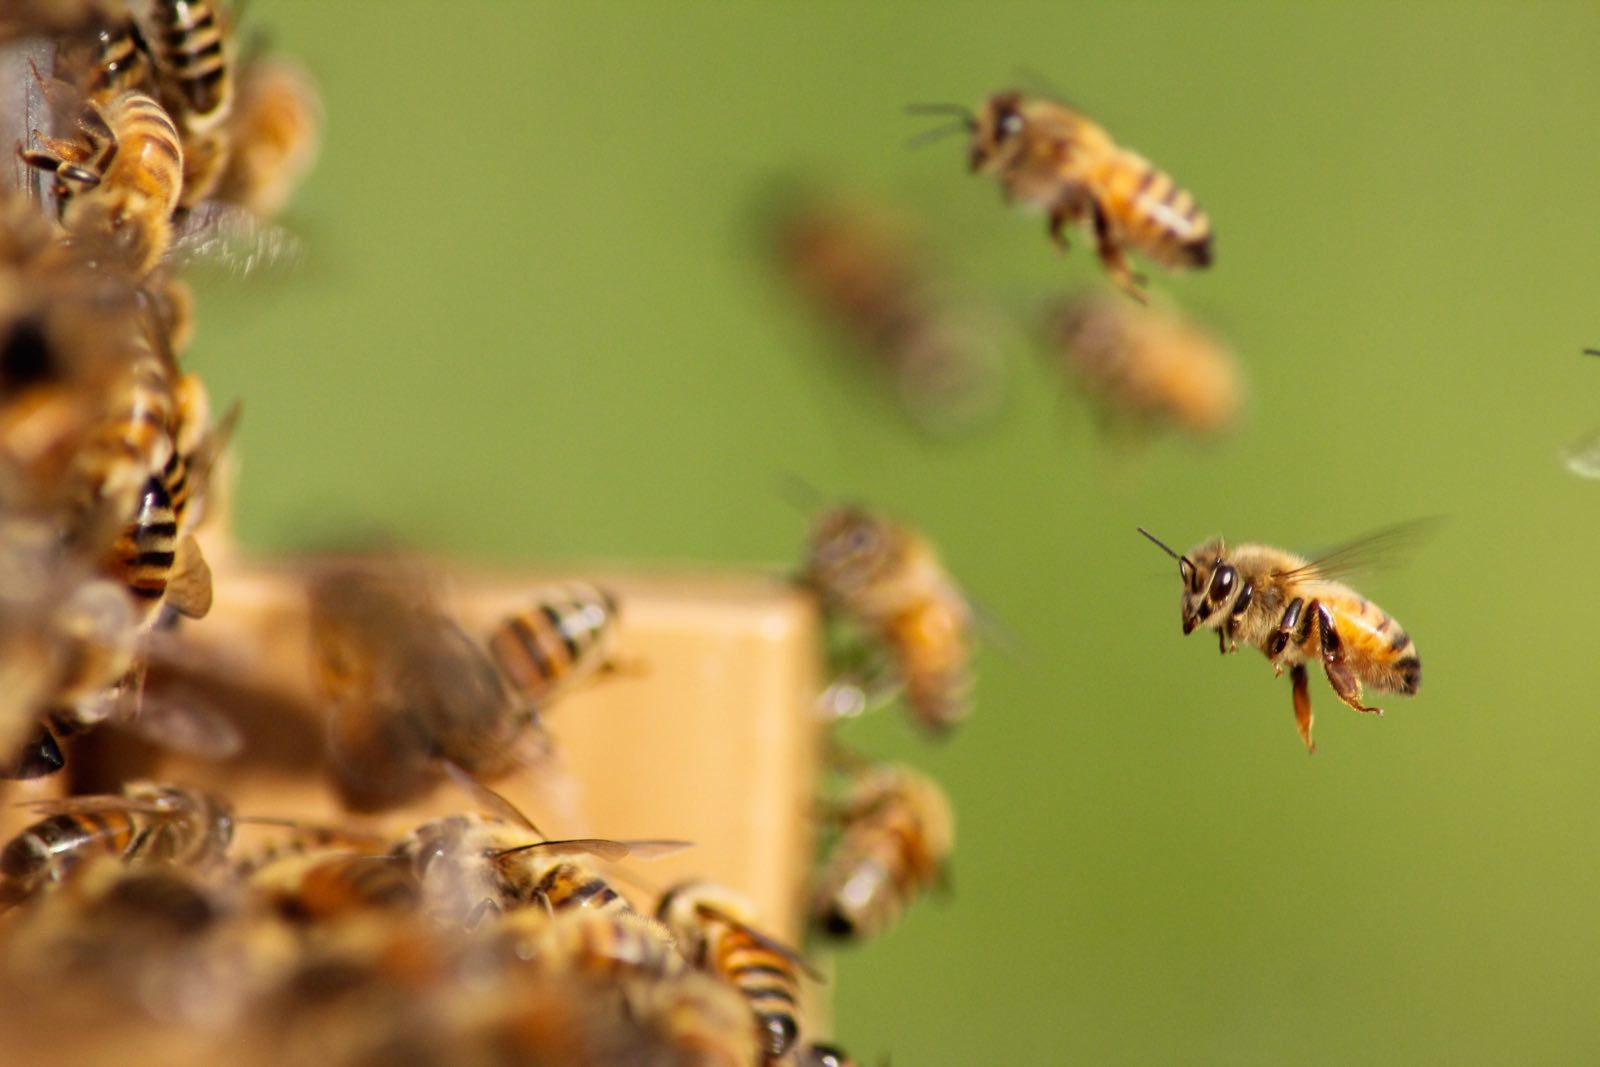 The loss of biodiversity is the greatest threat to humanity. Bee mortality makes that particularly clear. Picture credit: Damine Tupinier, unsplash.